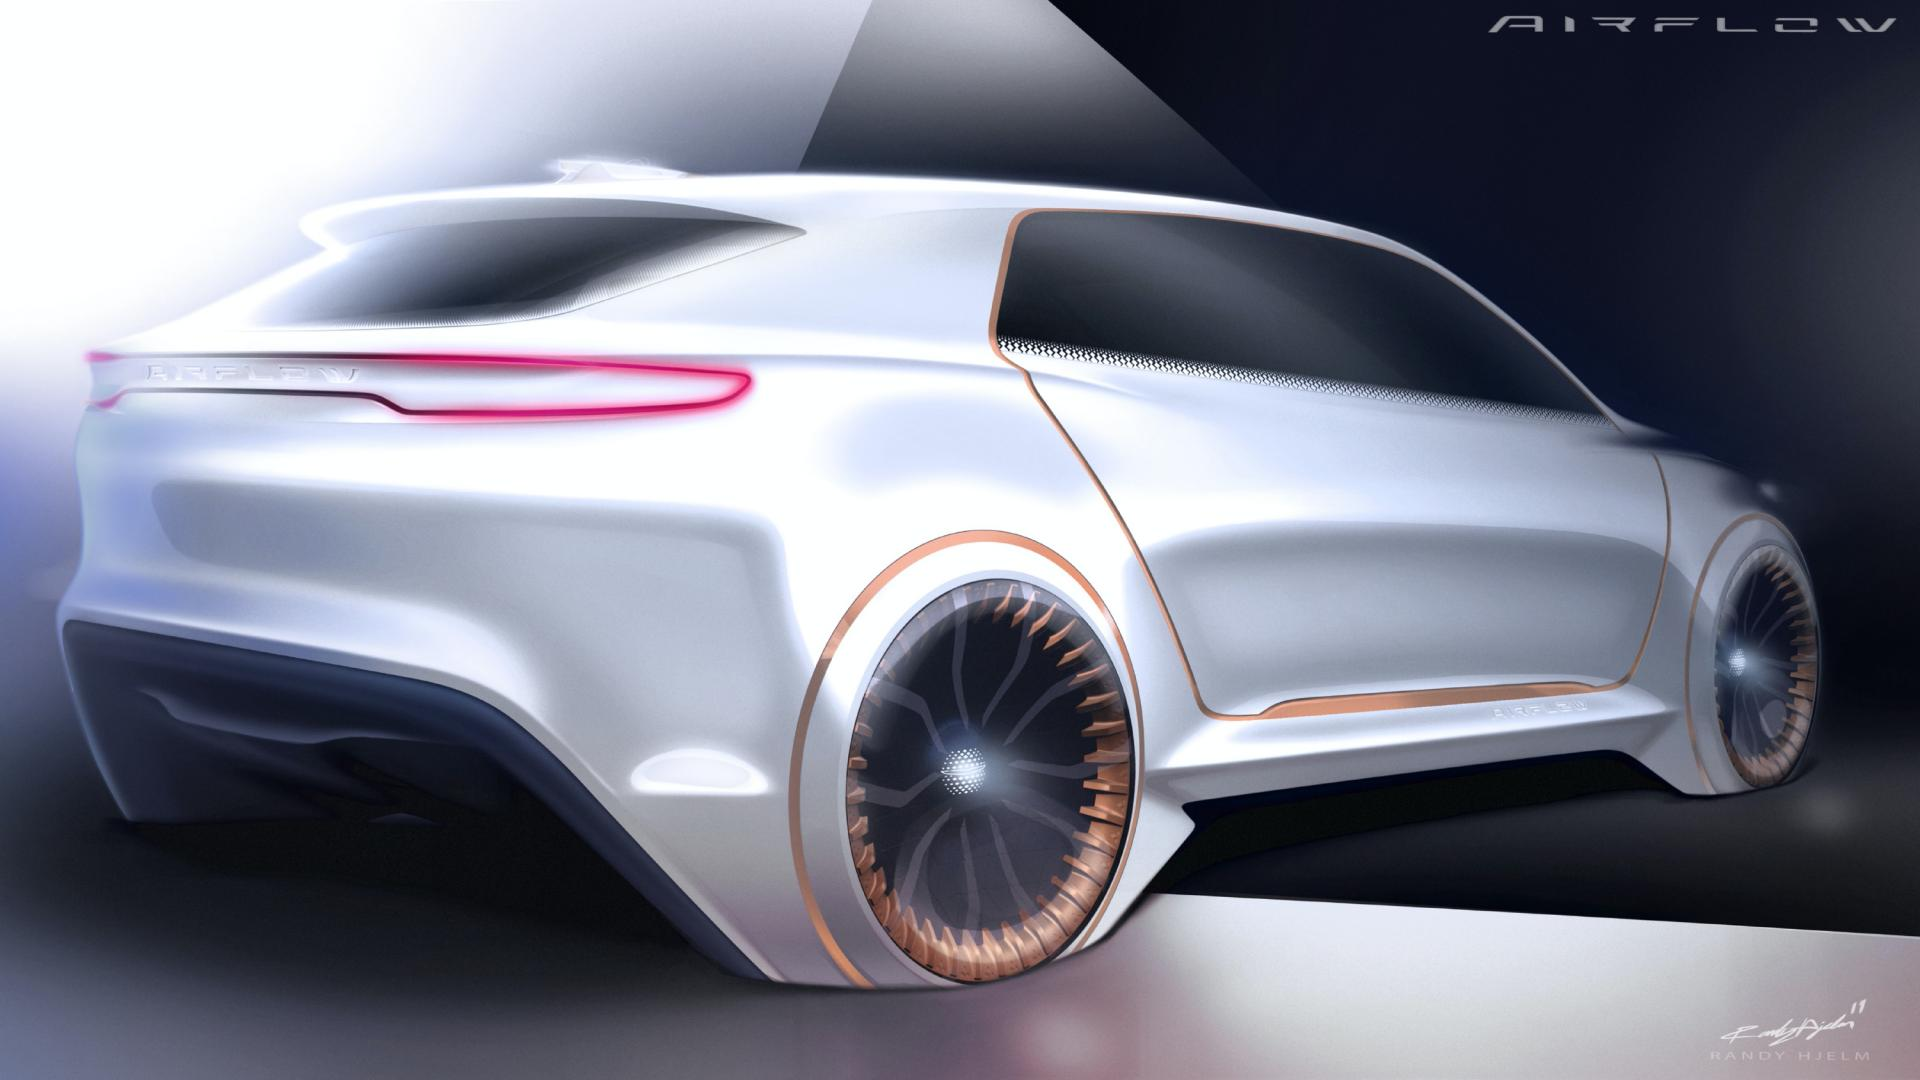 2020-Chrysler-Airflow-Vision-concept-5